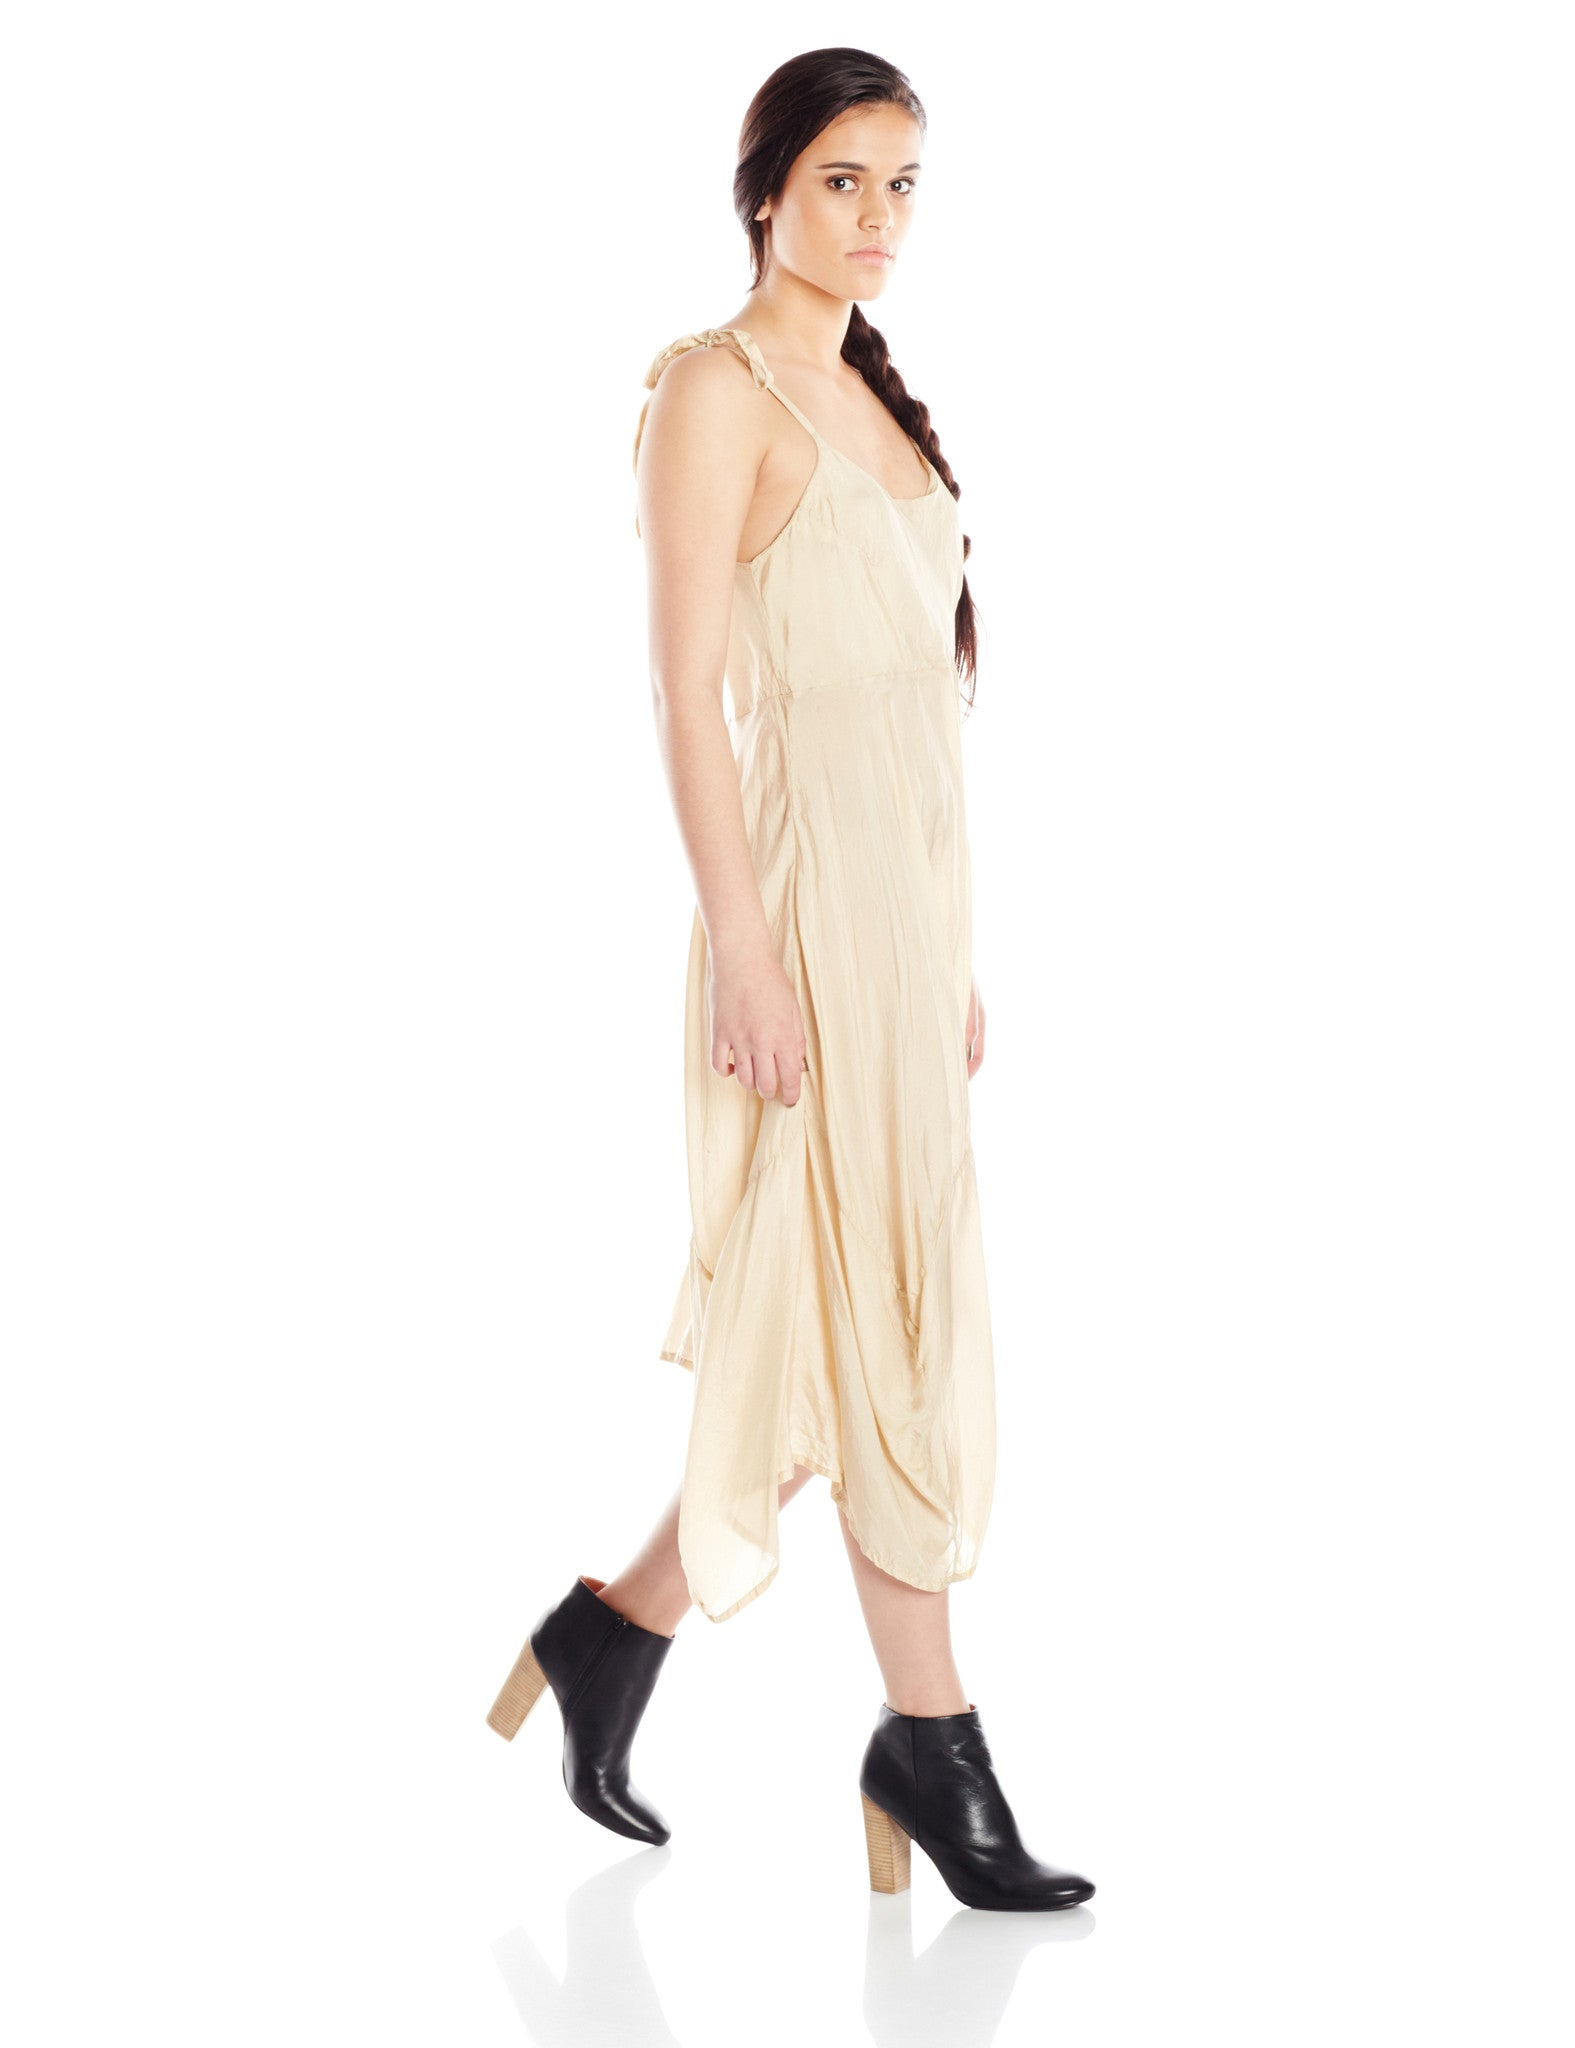 Artists and Revolutionaries Penelope Dress Women Eco Fashion Sustainable Made in Hudson Valley New York One Size Bias Cut Silk